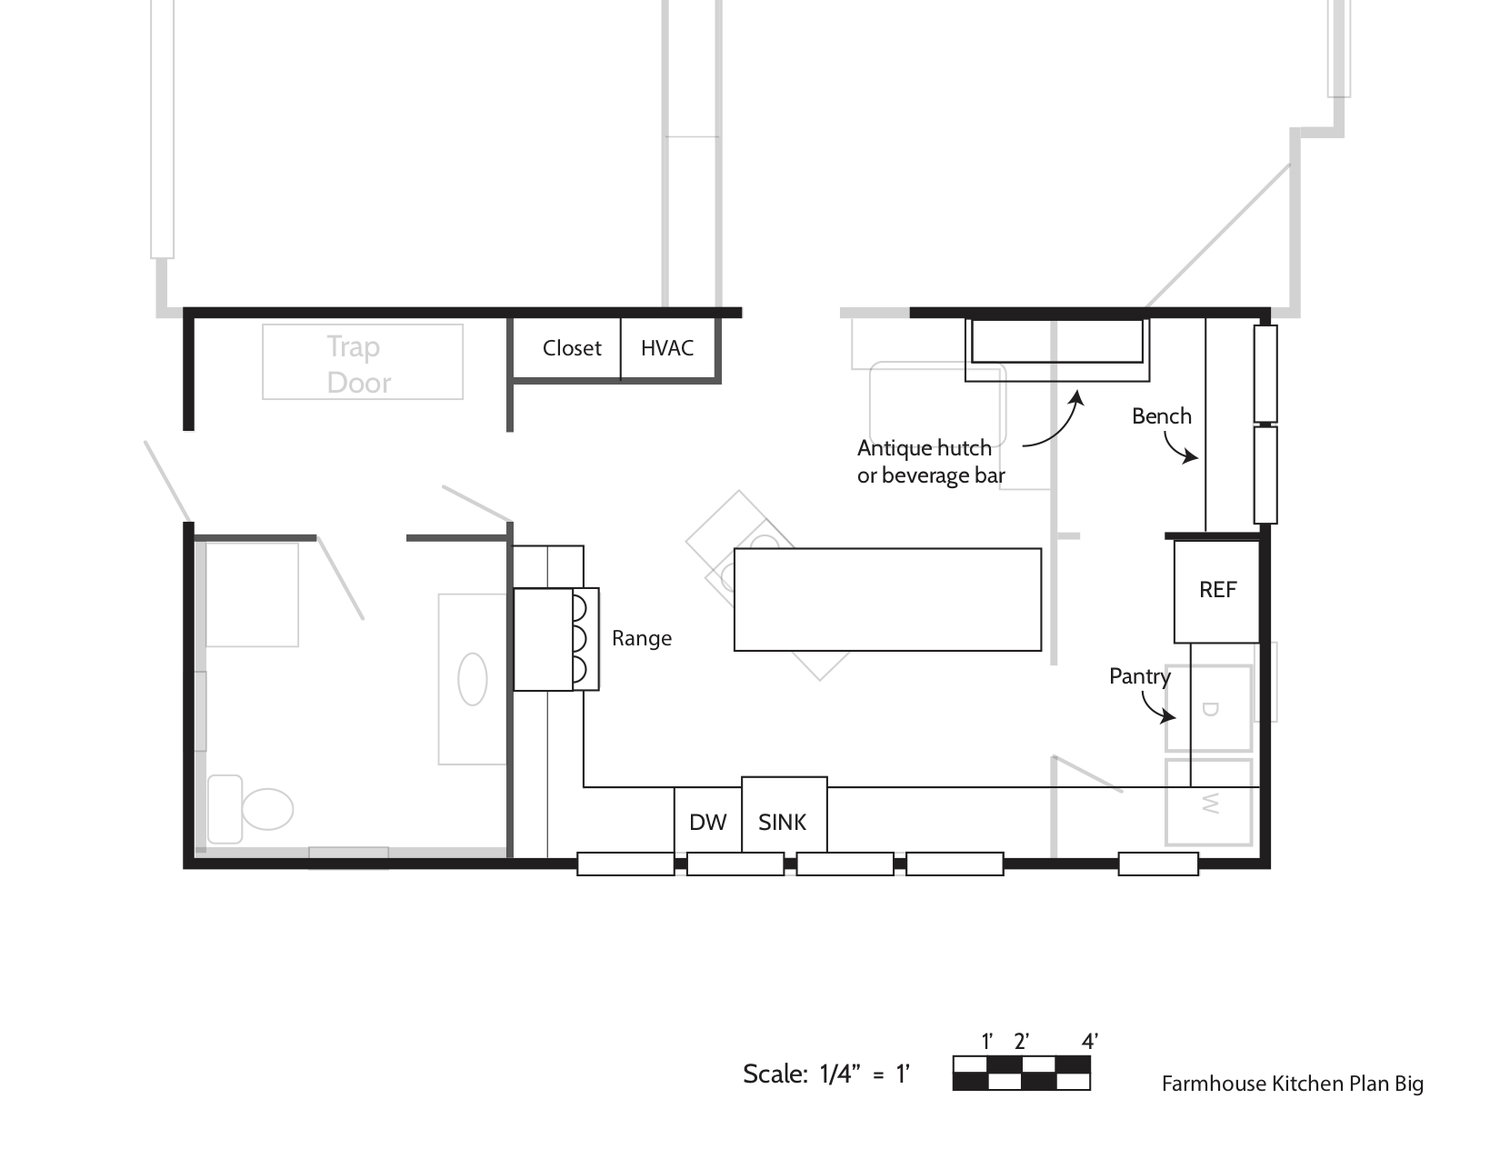 The Farmhouse // Kitchen Floor Plan 9.9 — The Grit and Polish